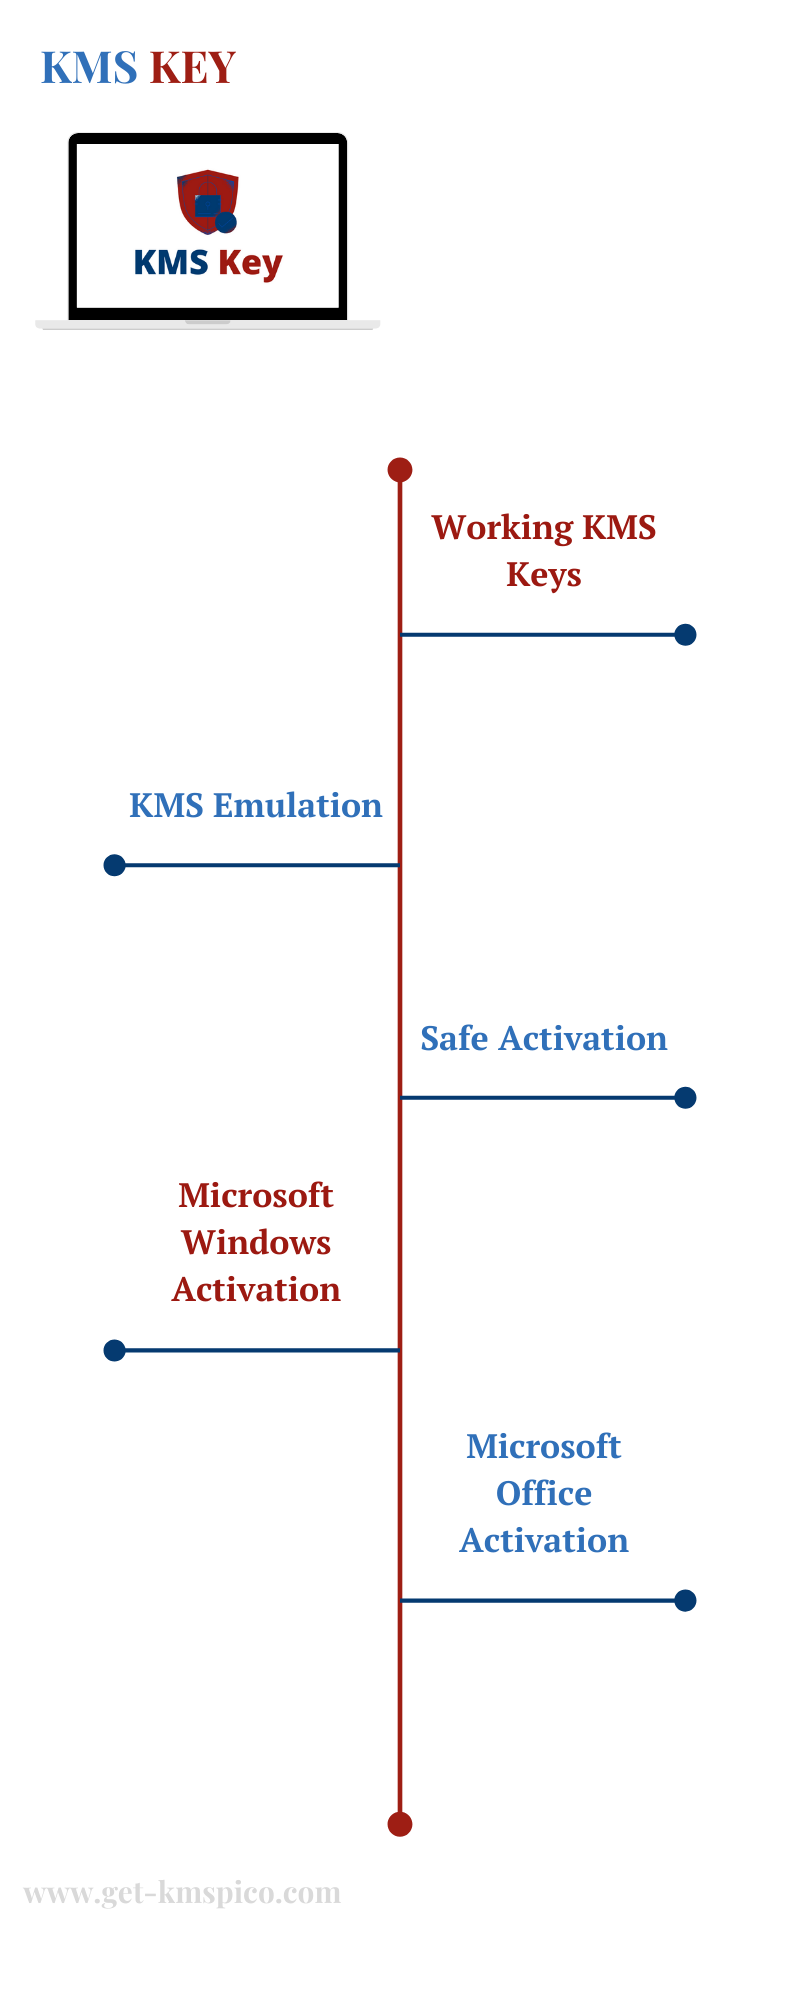 KMS-Key-Infographic